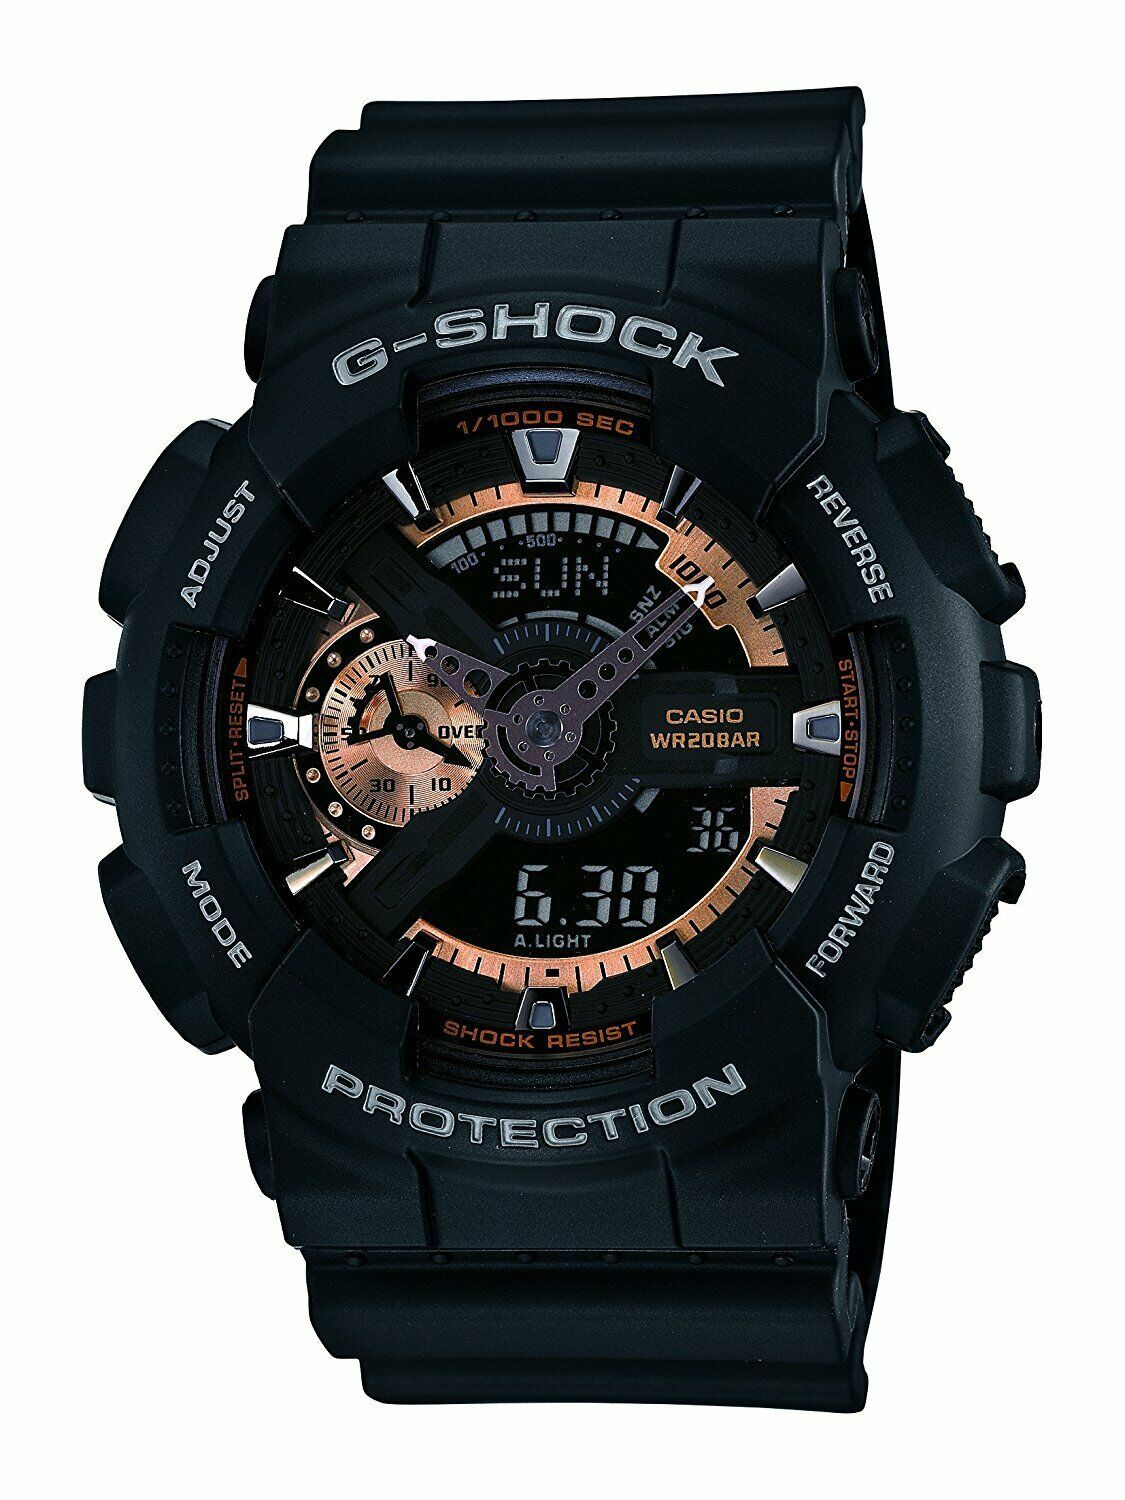 Primary image for Casio G-Shock Analog-Digital Black Dial Men's Watch - GA-110RG-1ADR (G397)